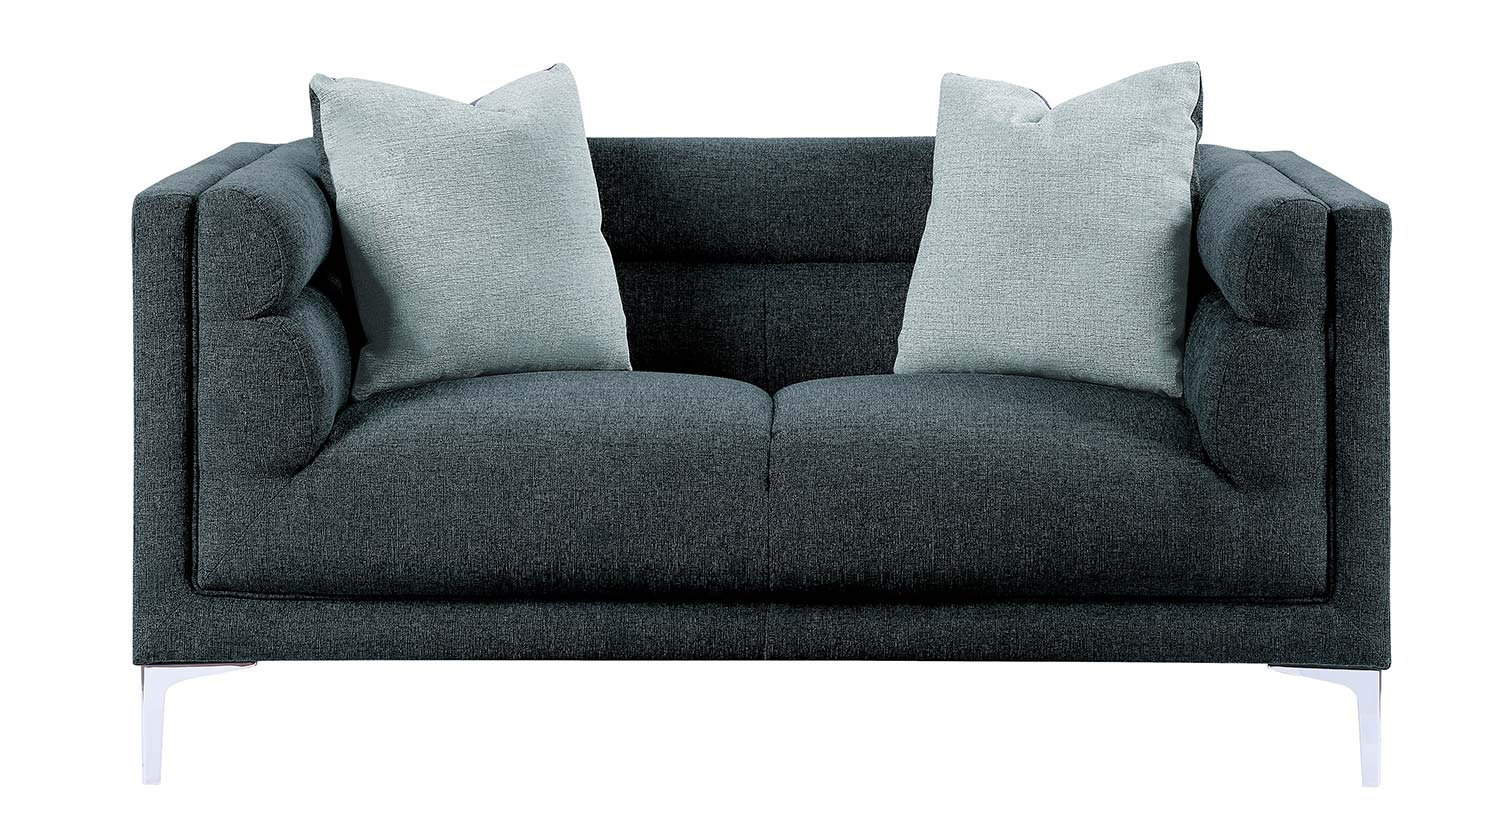 Homelegance Vernice Love Seat - Dark blue gray